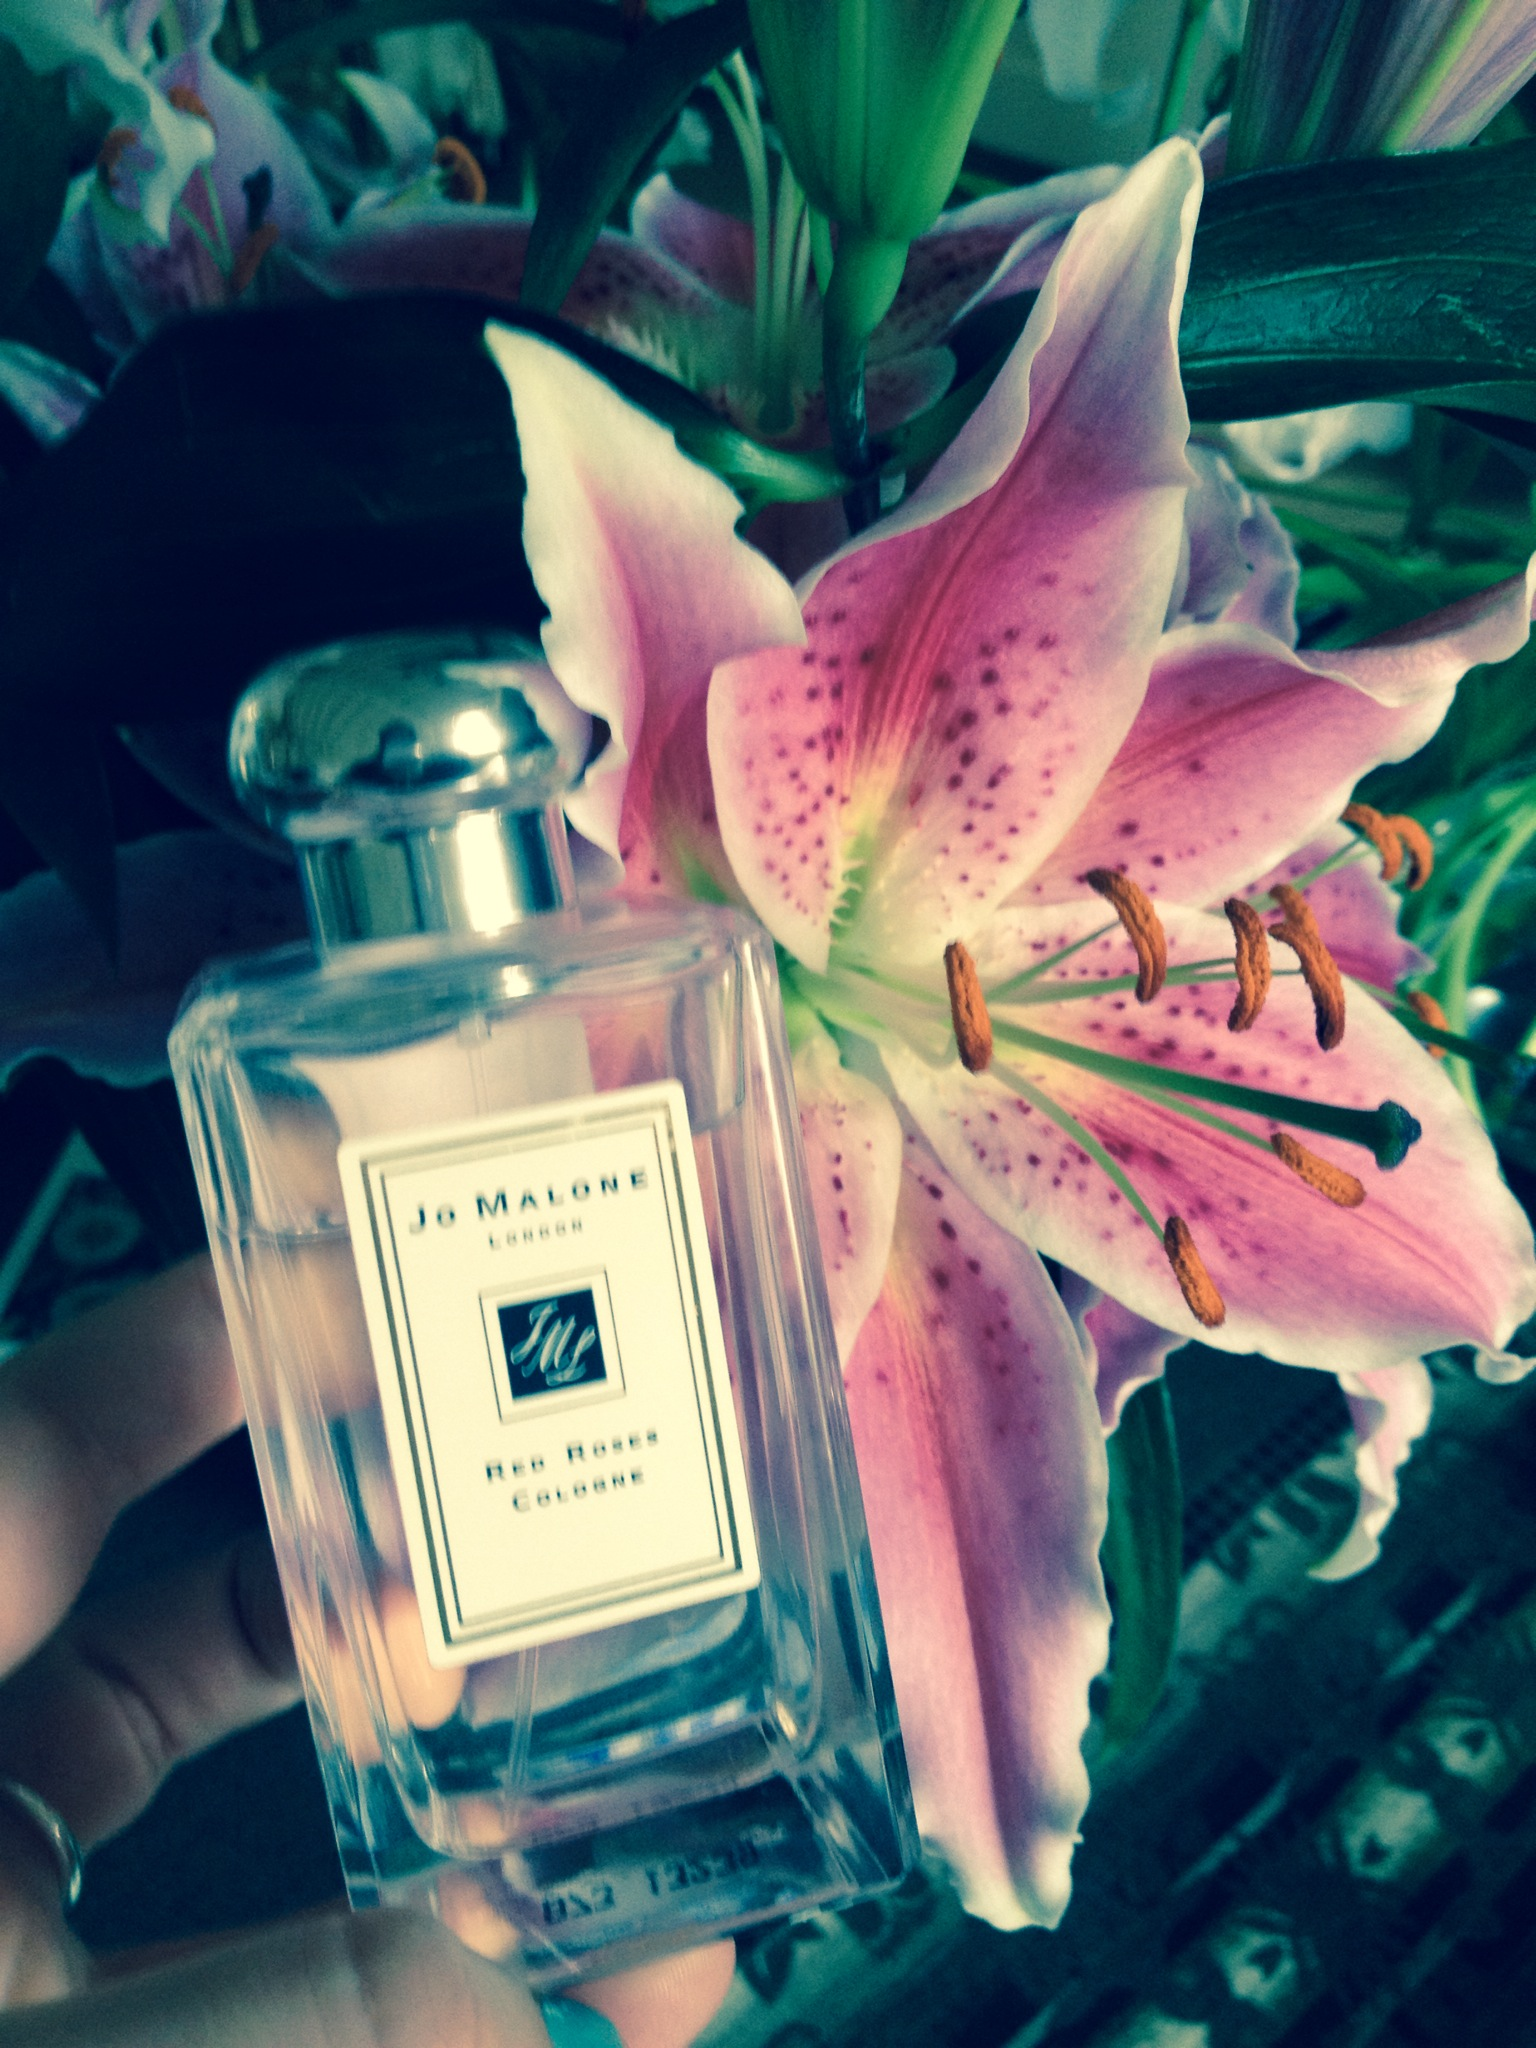 Jo Malone Rose Fragrance (Lily Optional)